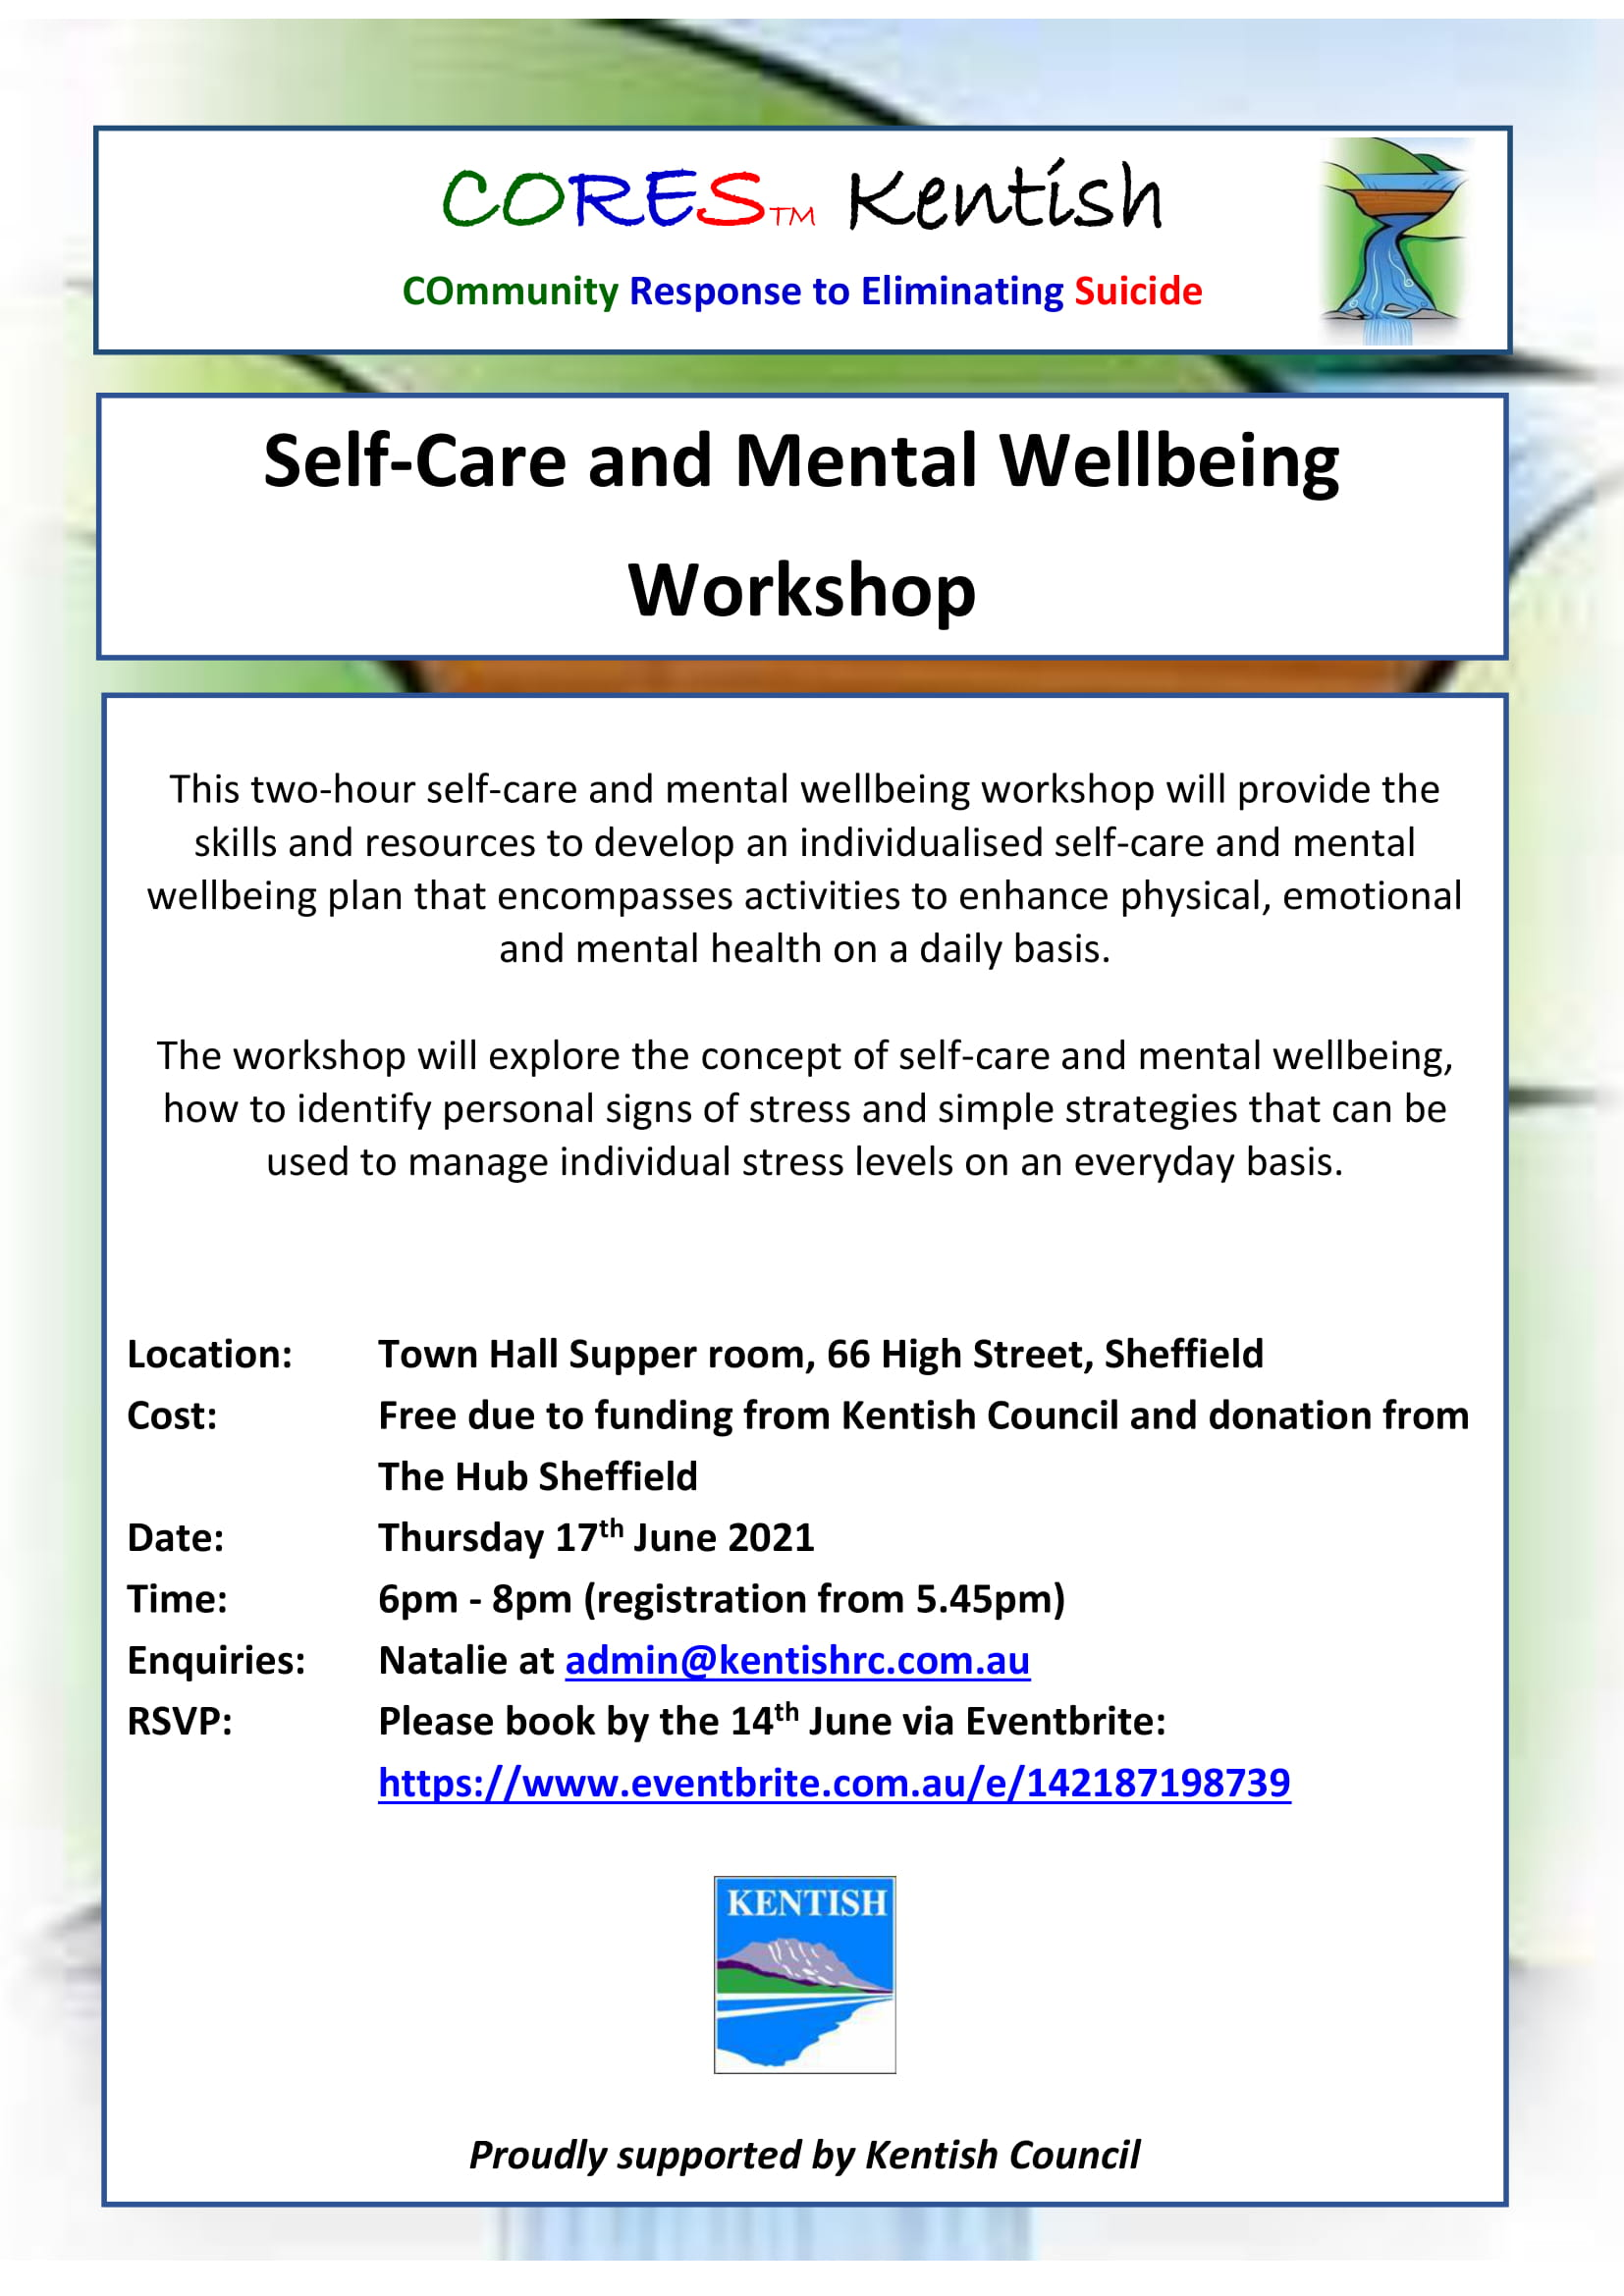 CORES Self-Care and Mental Wellbeing Kentish June 2021-1